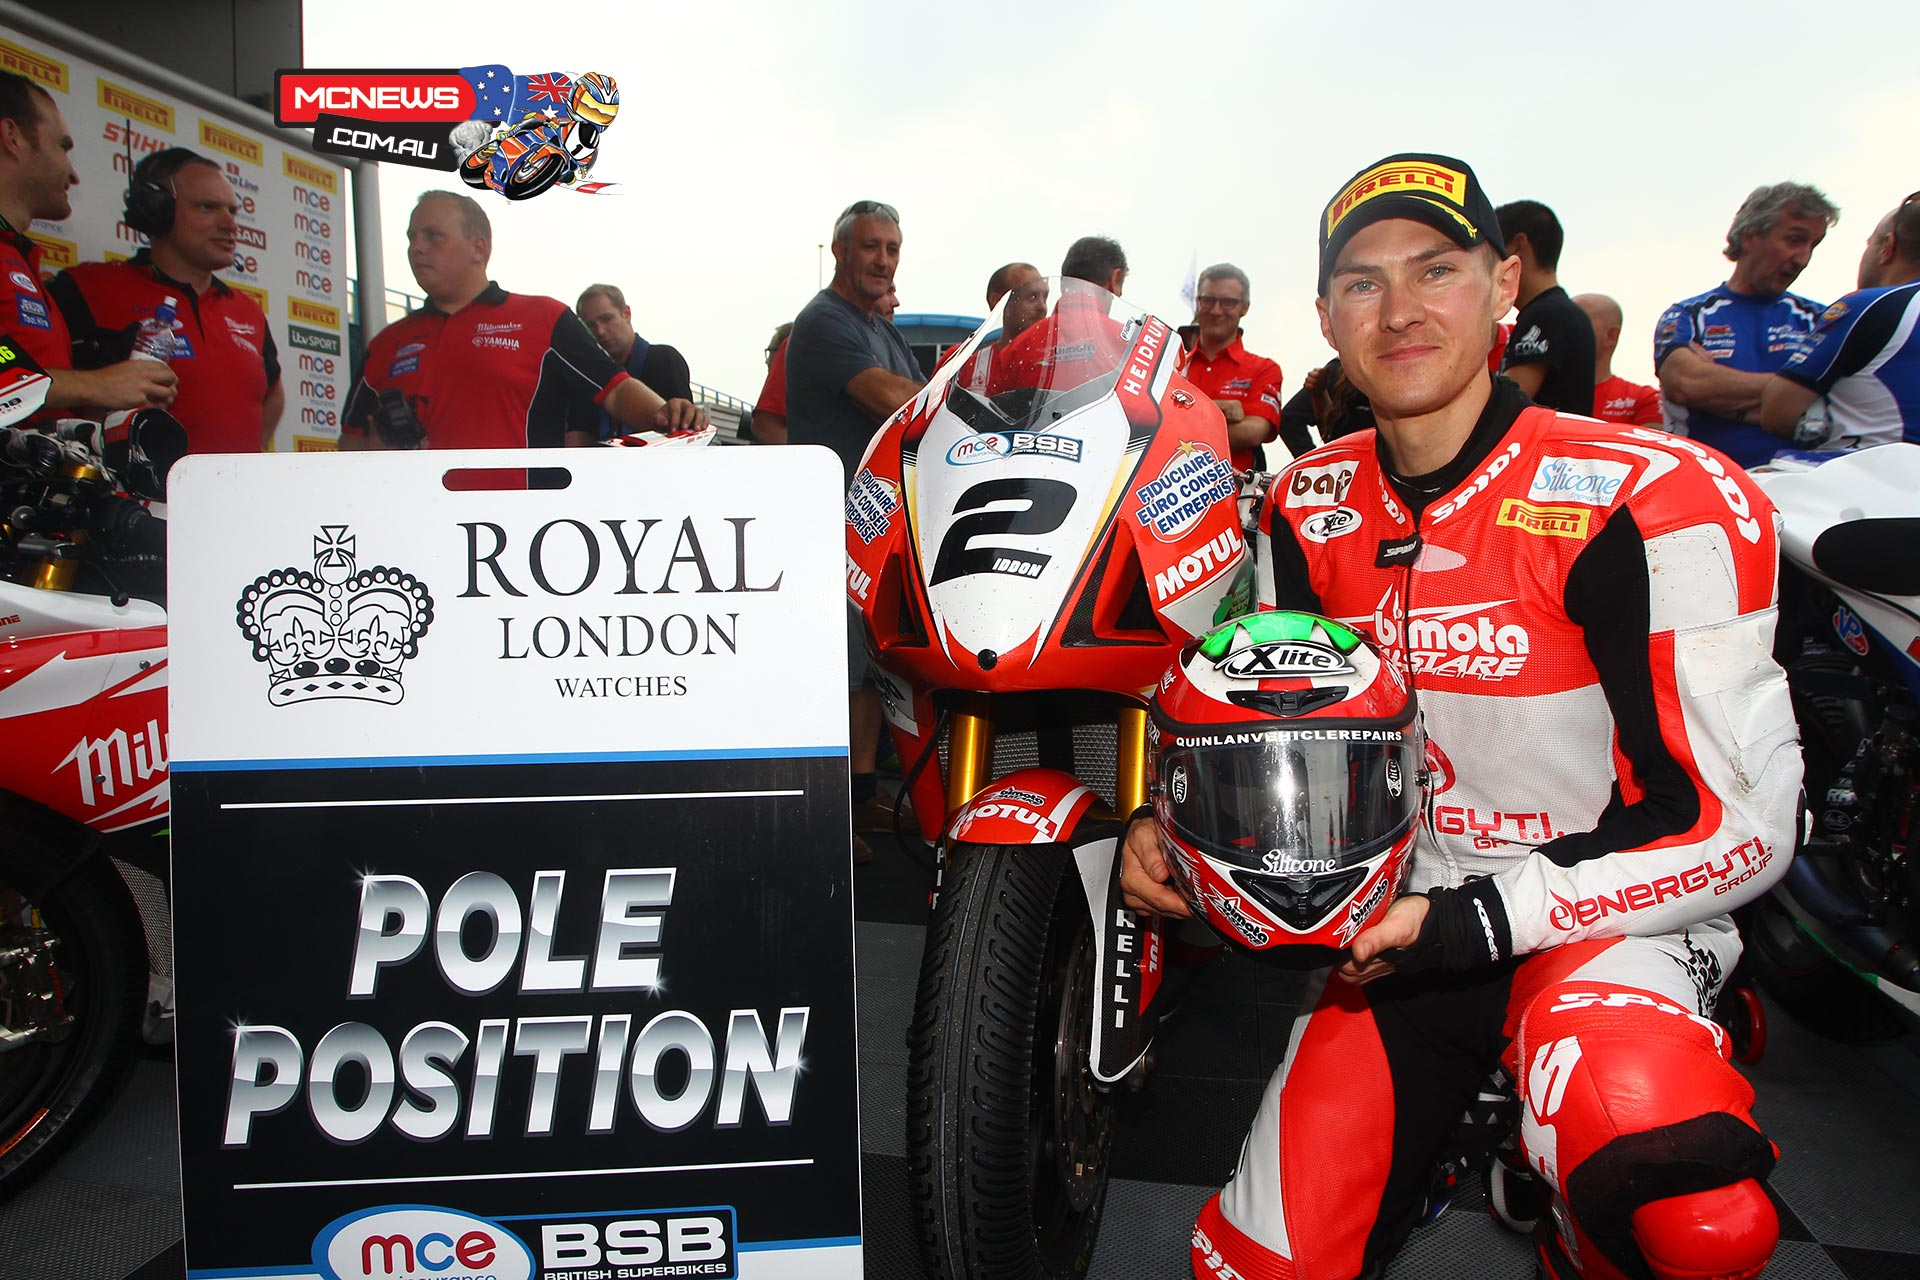 delight for the Alstare Bimota Junior team who claimed a historic first pole position with Christian Iddon